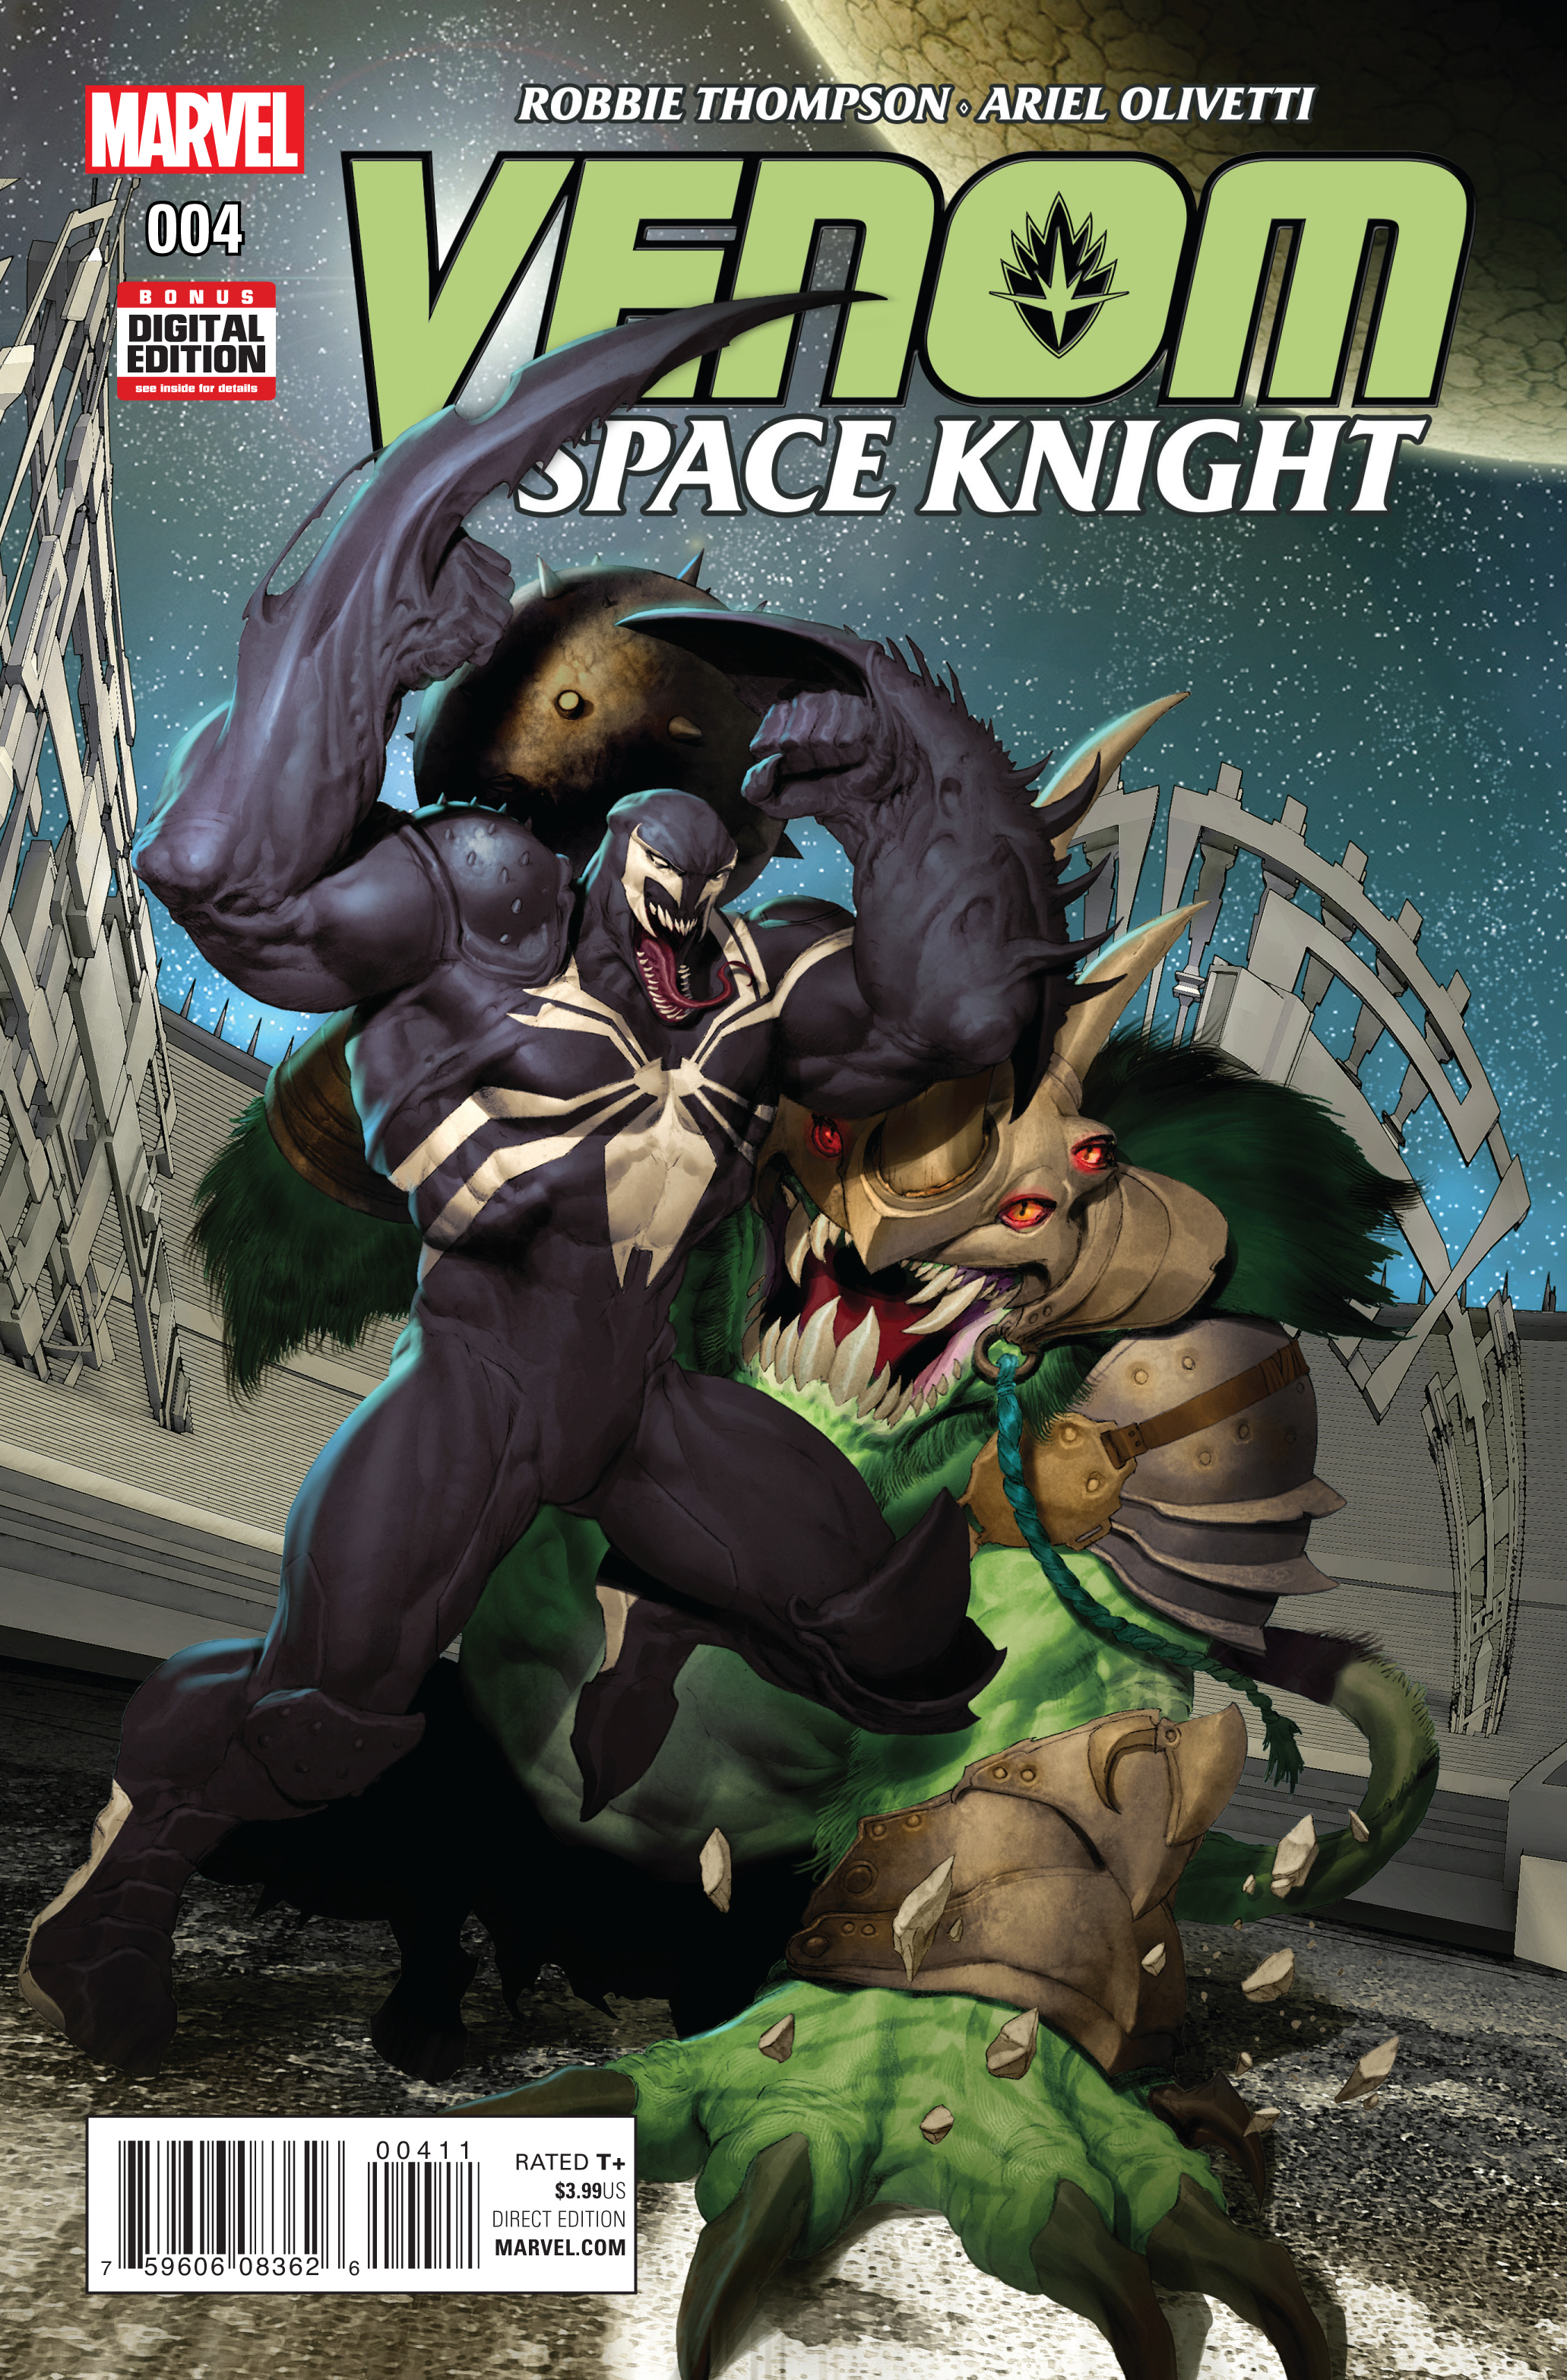 VENOM SPACE KNIGHT #4